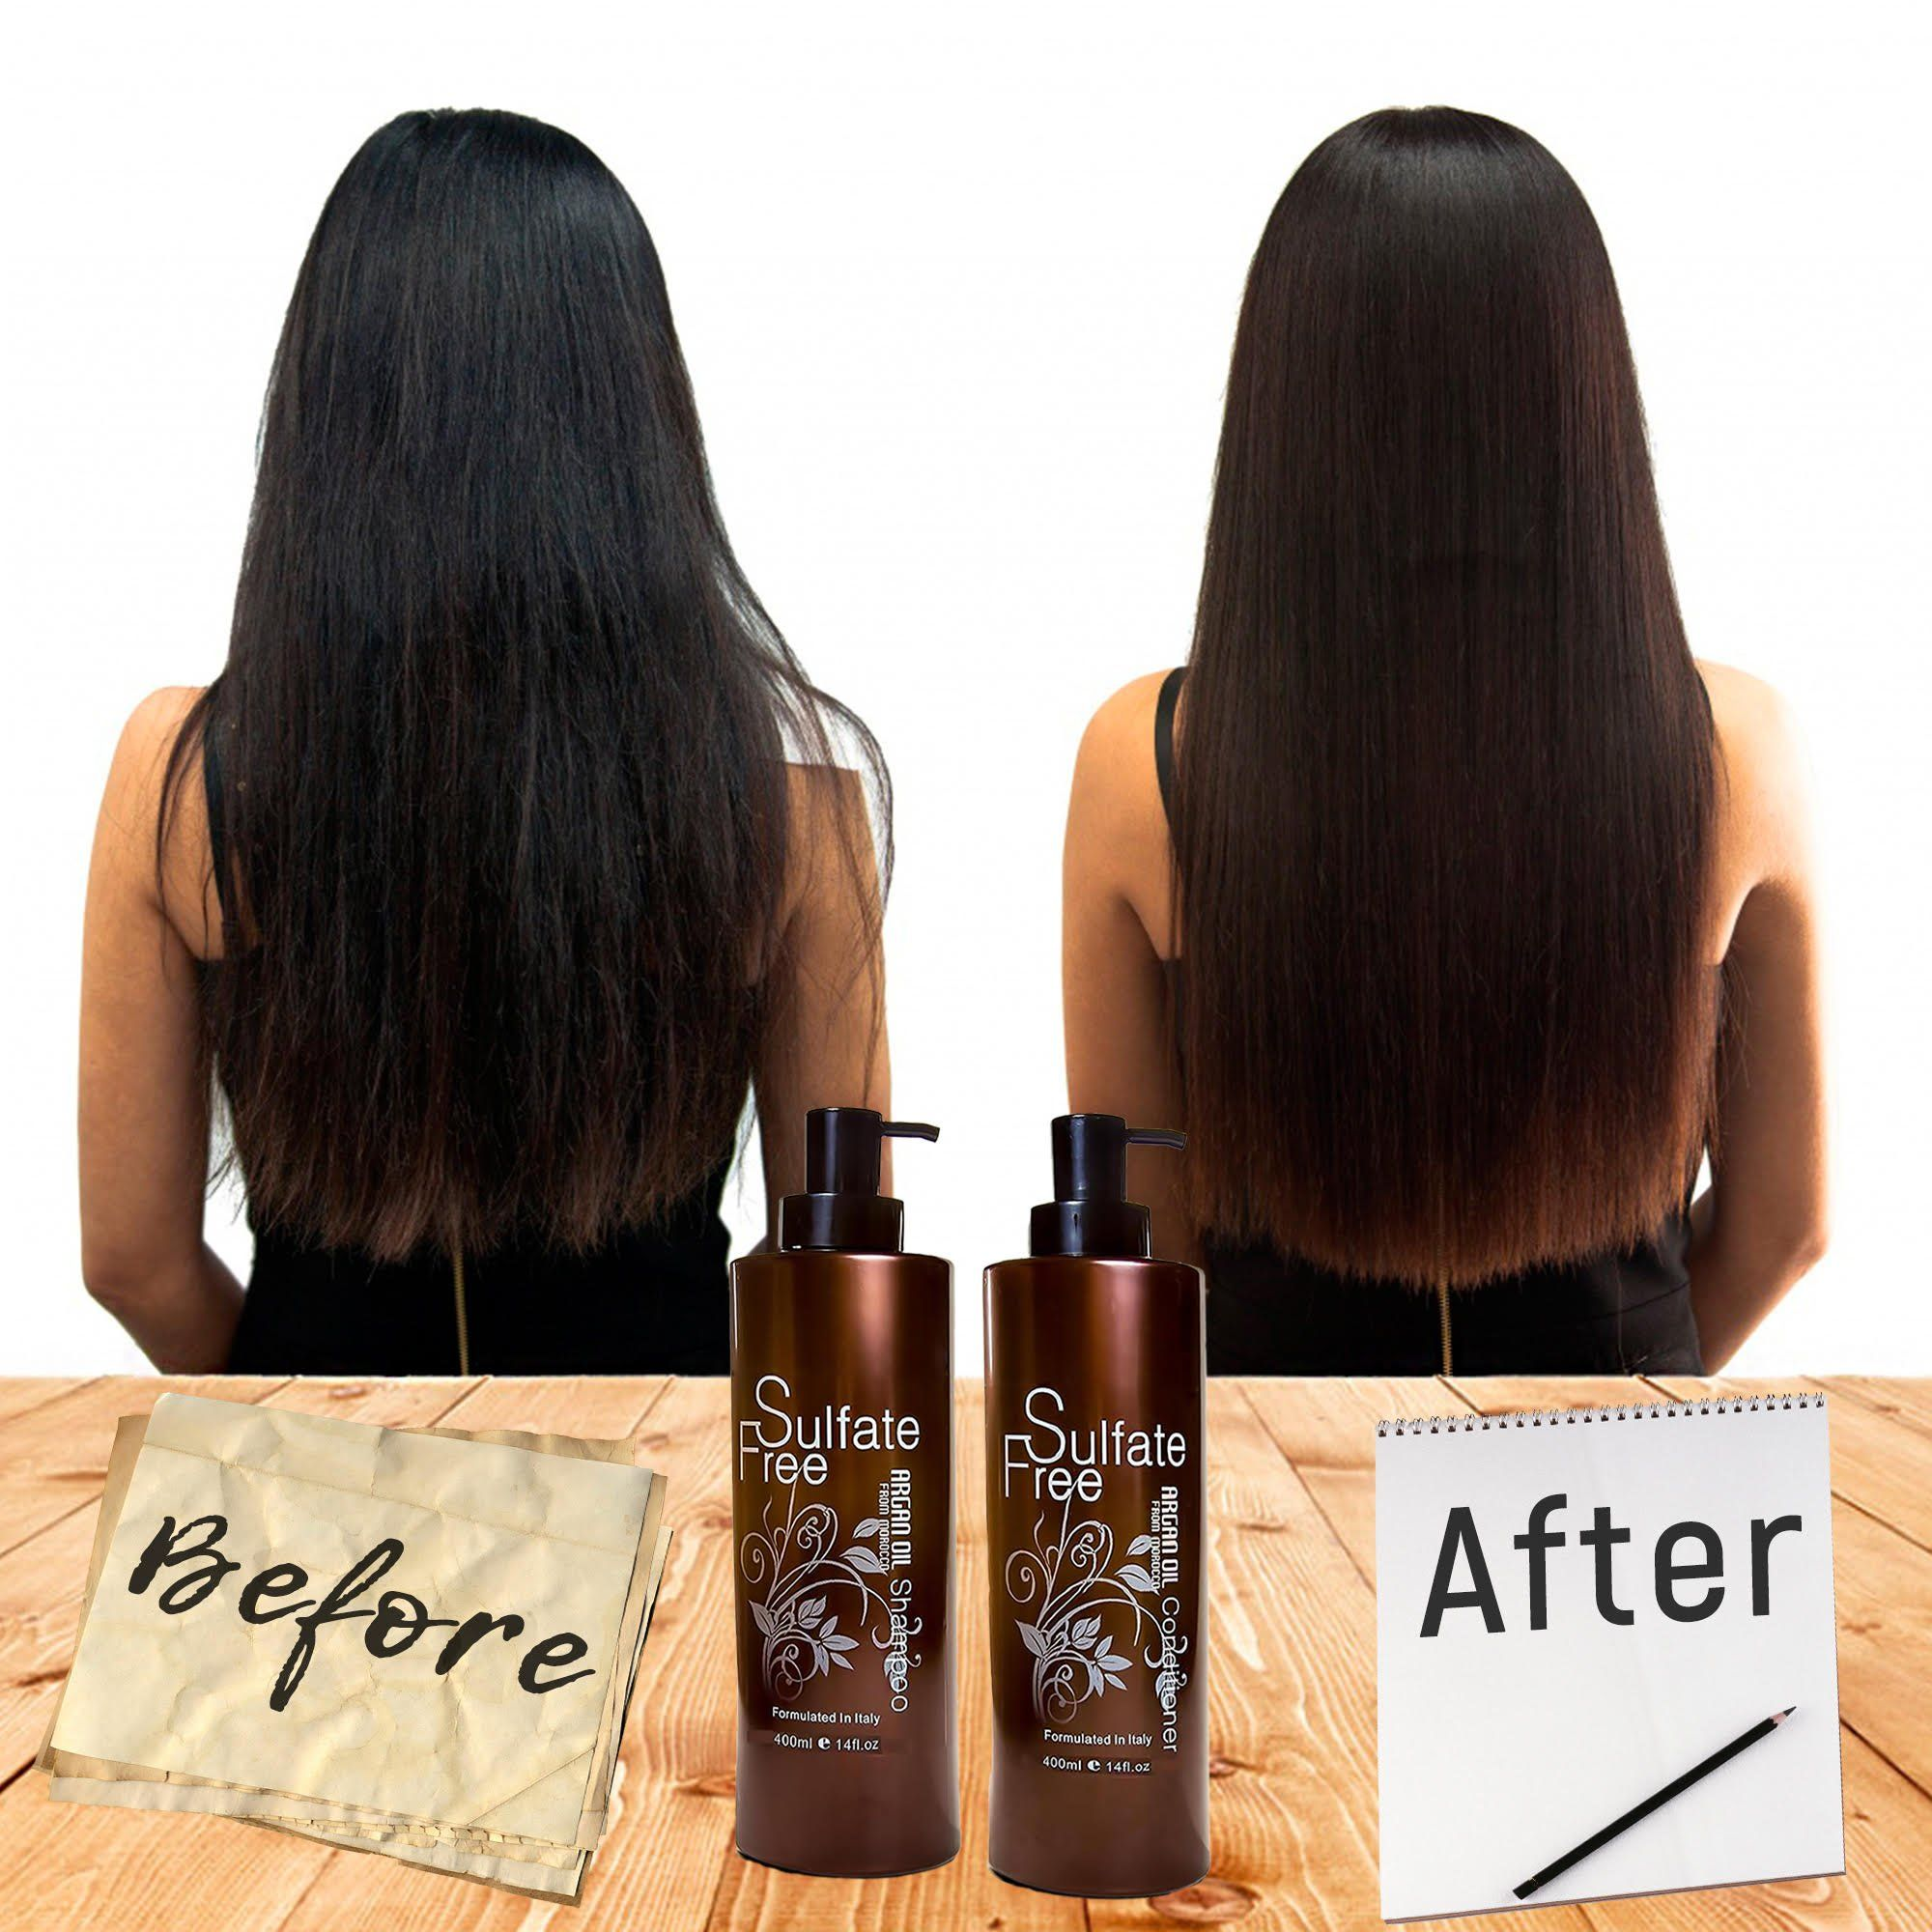 Moroccan Argan Oil Conditioner Sulfate Free Best For Damaged Dry Curly Or Frizzy Hair Thickening For Fi Shampoo For Wavy Hair Dry Frizzy Hair Hair Thickening